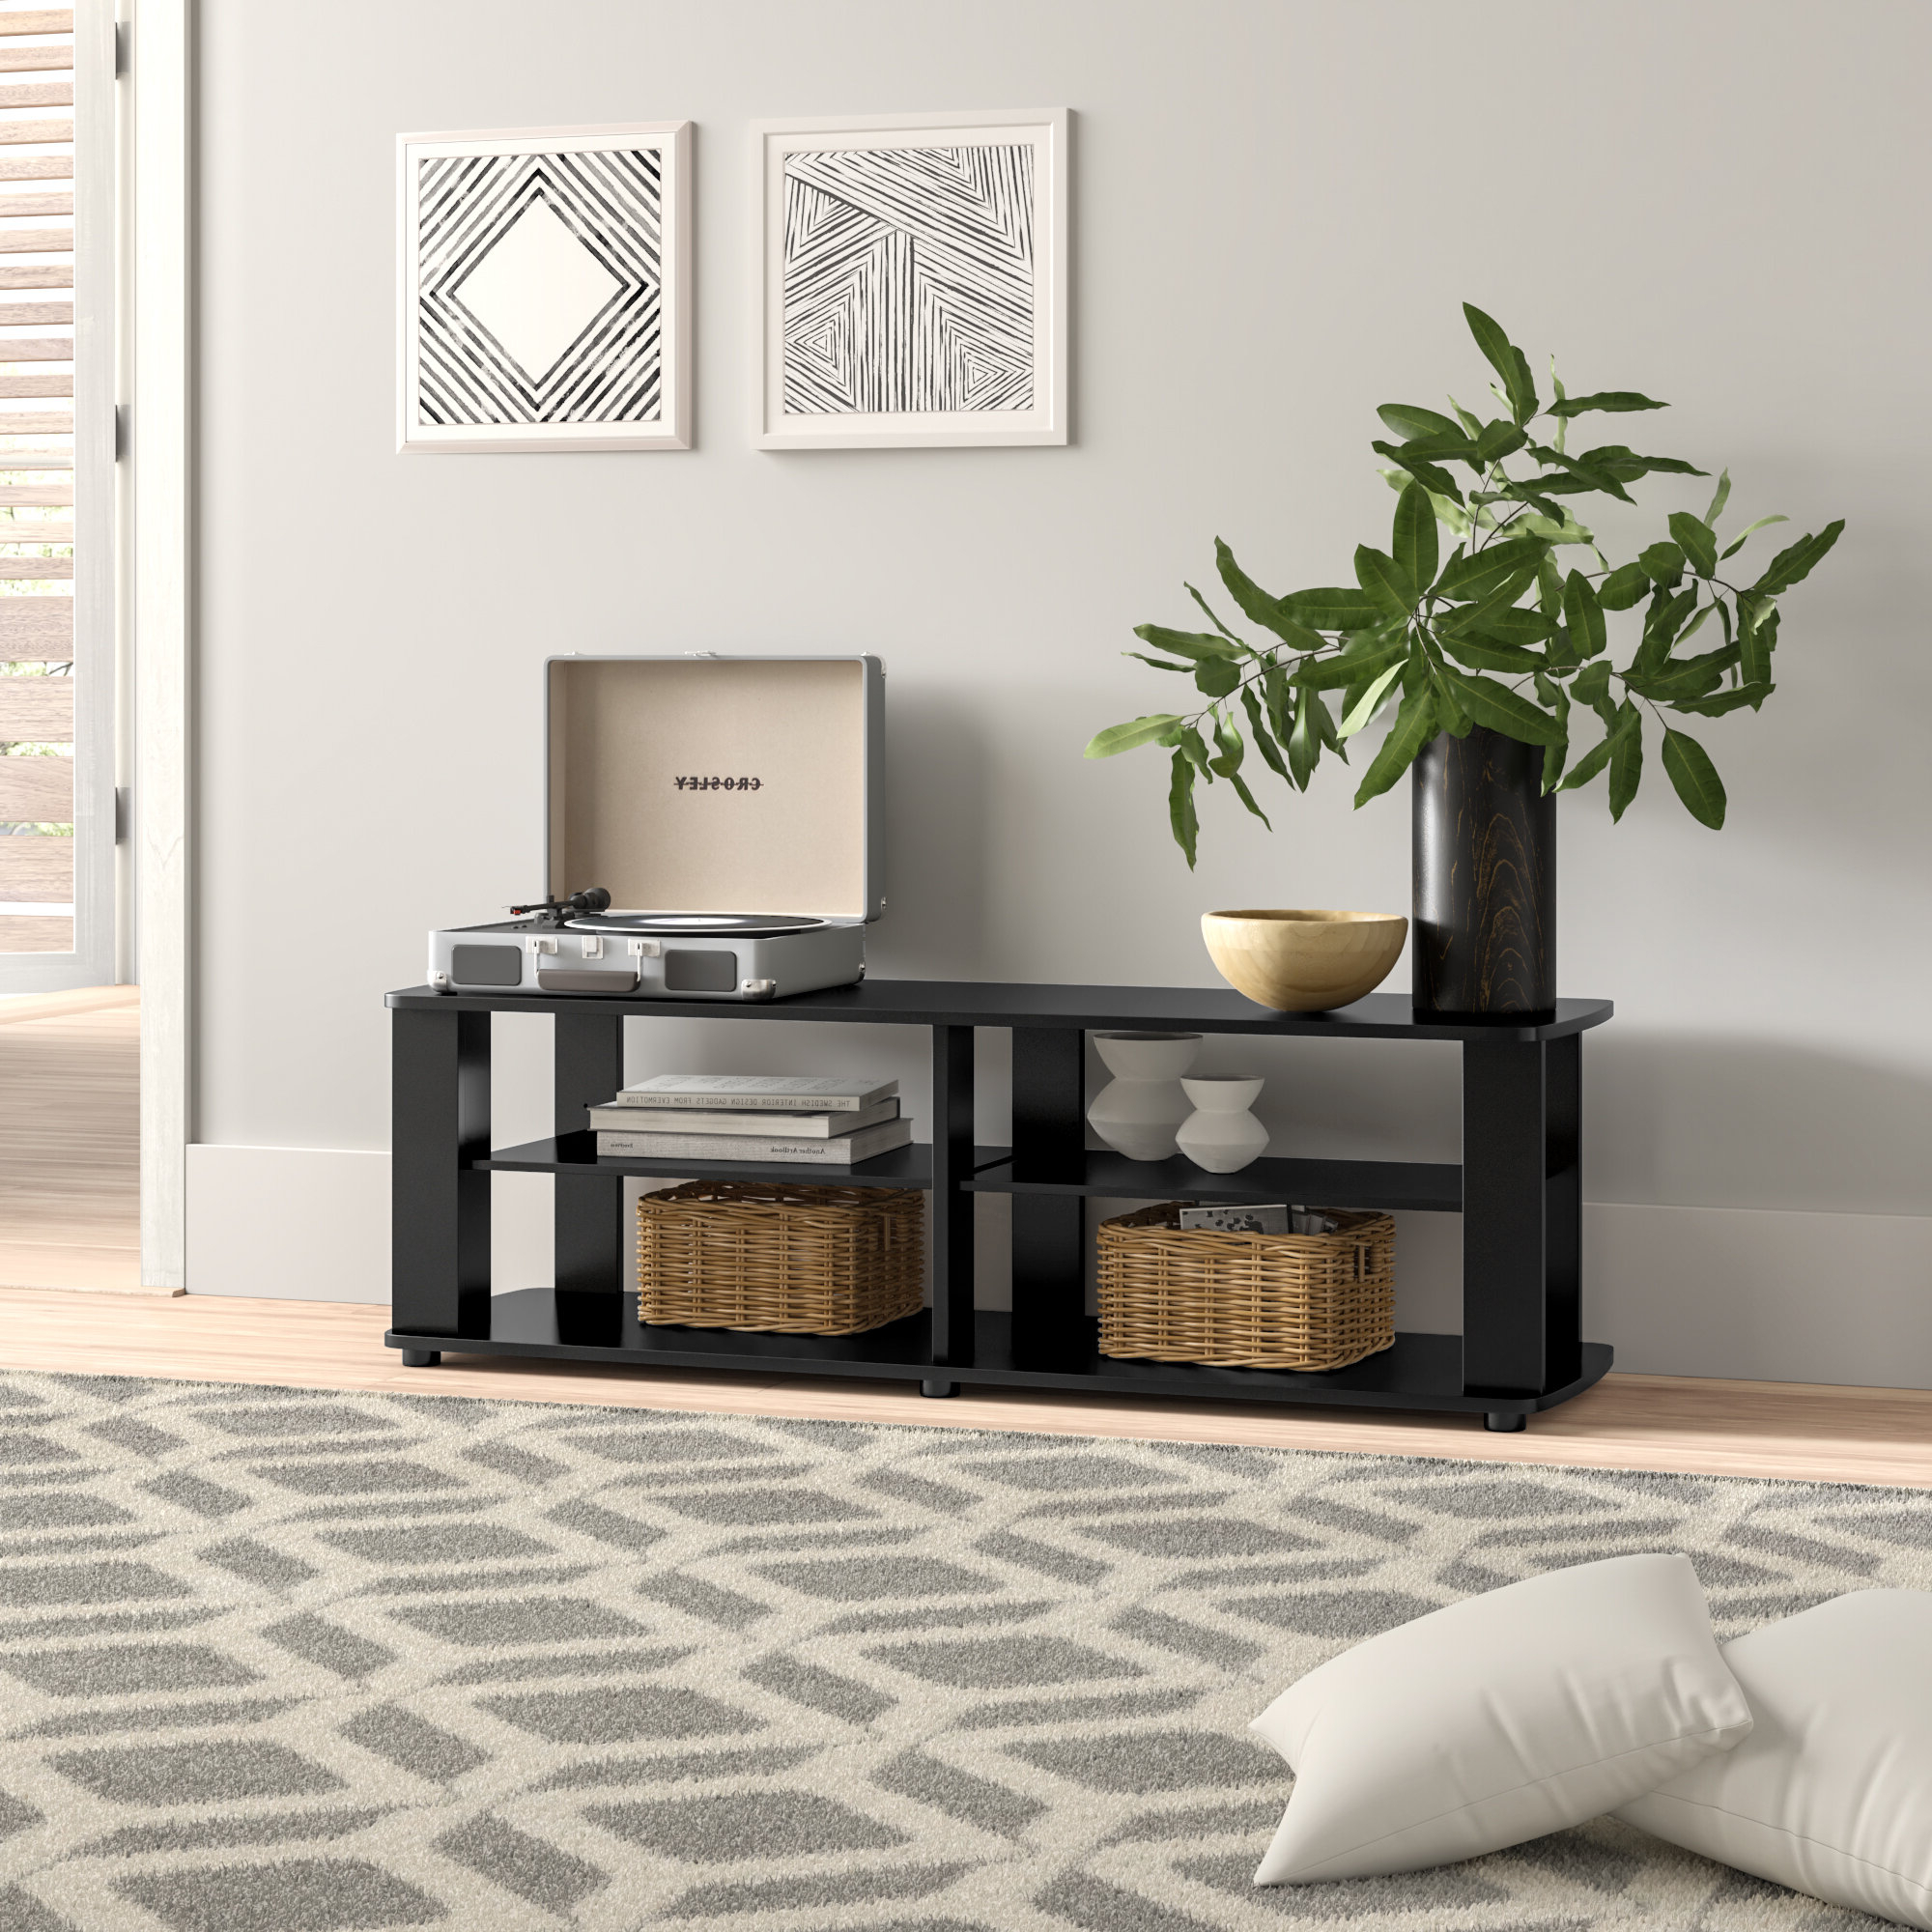 """Ericka Tv Stands For Tvs Up To 42"""" Intended For 2019 Brittney Tv Stand For Tvs Up To 42"""" (View 9 of 20)"""